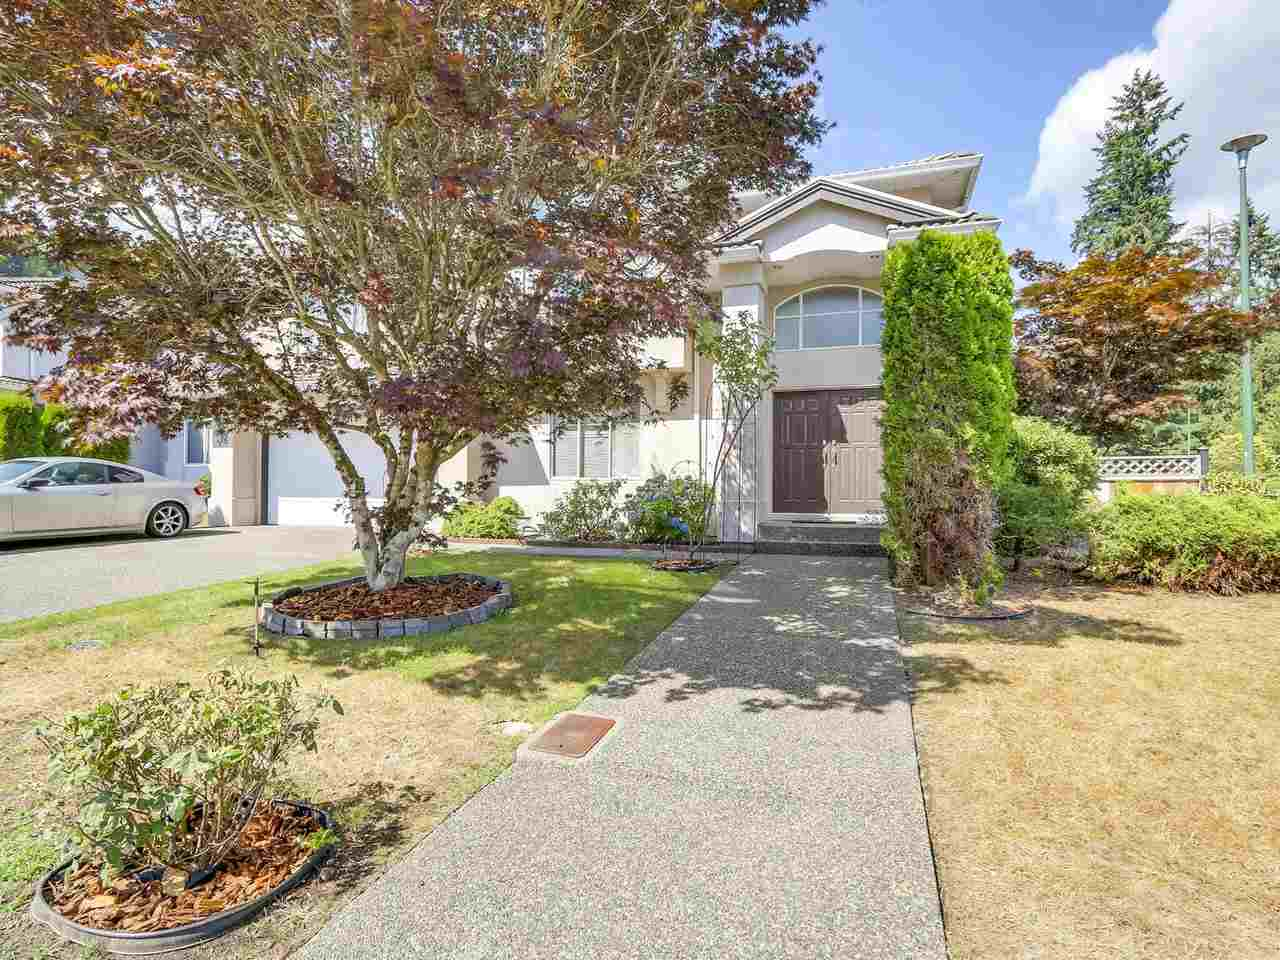 Main Photo: 3319 RAKANNA Place in Coquitlam: Hockaday House for sale : MLS® # R2197763